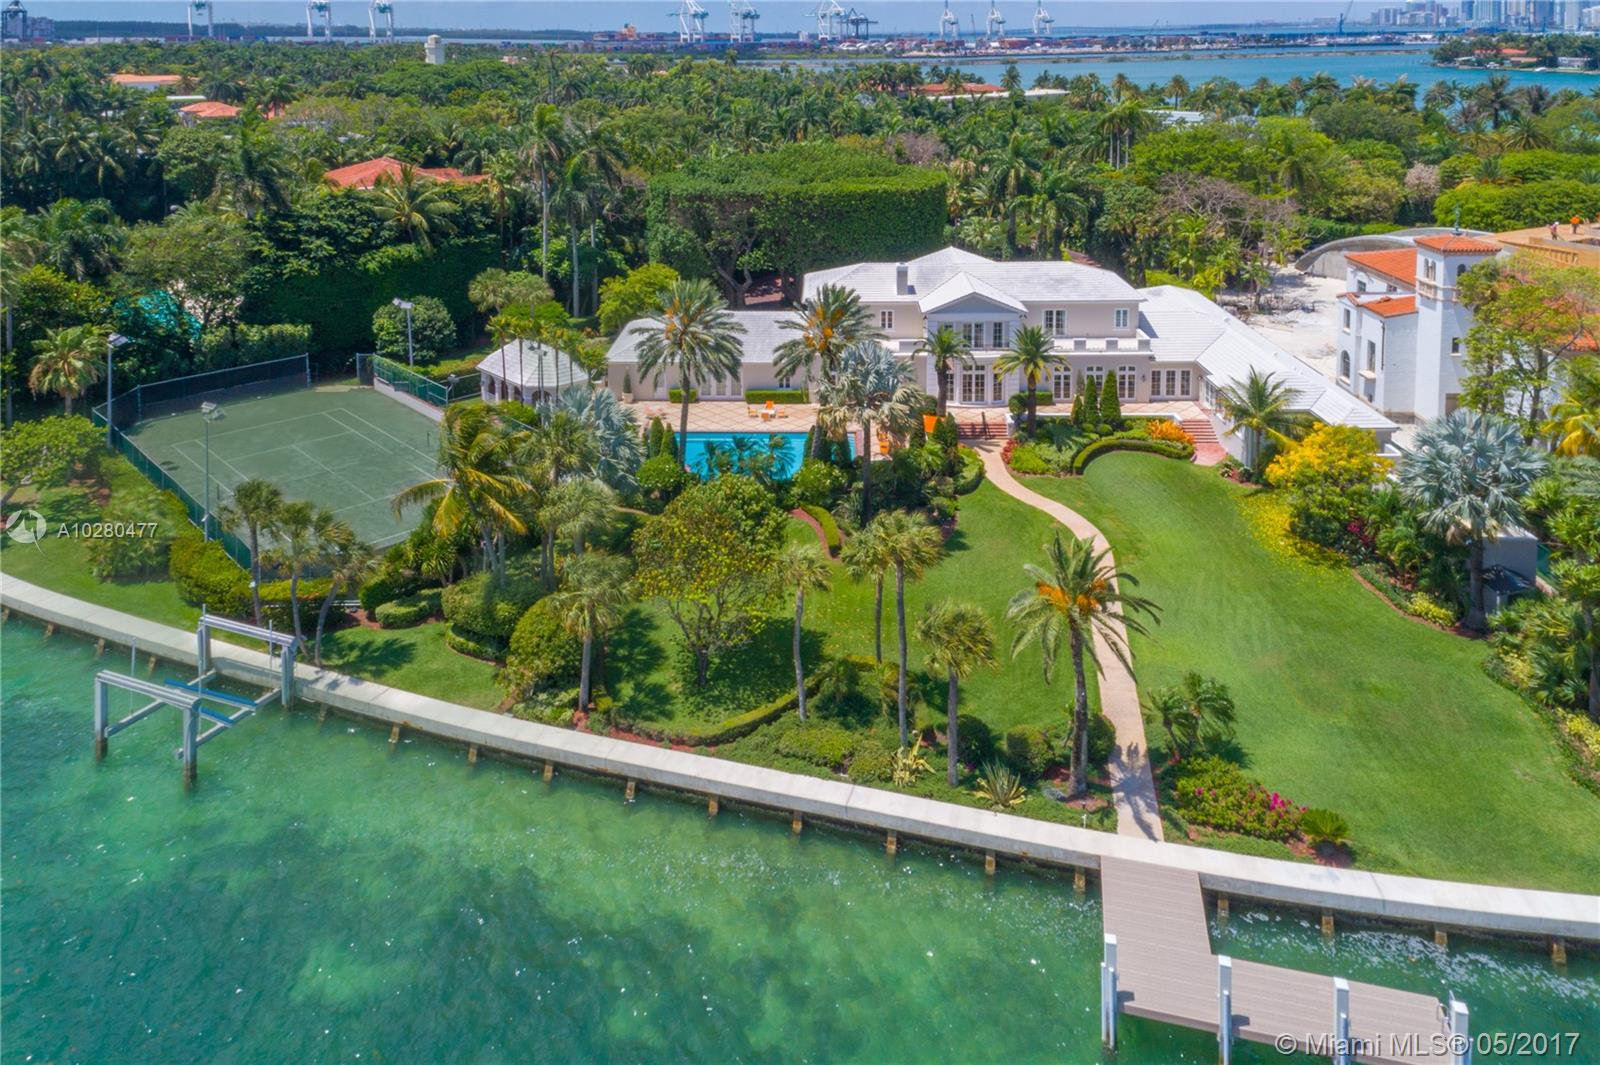 A Rare Opportunity To Own This Unique 1.85 Acre Estate On The Prestigious Star Island, On The Market For The First Time In 44 Years! This Premiere Estate Situated On The Most Sought After North Side Of Star Island Offers Unparalleled Unobstructed Wide Open Water Views Of Biscayne Bay. This Grand 7 Bd, 7.5 Ba Residence Is Located On A Spectacular 80, 664 Sf Lot, Boasting 327 Feet Of Waterfrontage. Take In Sweeping Ocean Breezes From The East Throughout The Expansive Grounds, In The Sparkling Pool, Or Out On The Lighted Tennis Court. Enjoy Living In One Of 34 Homes On This Elite And Exclusive Island Paradise.